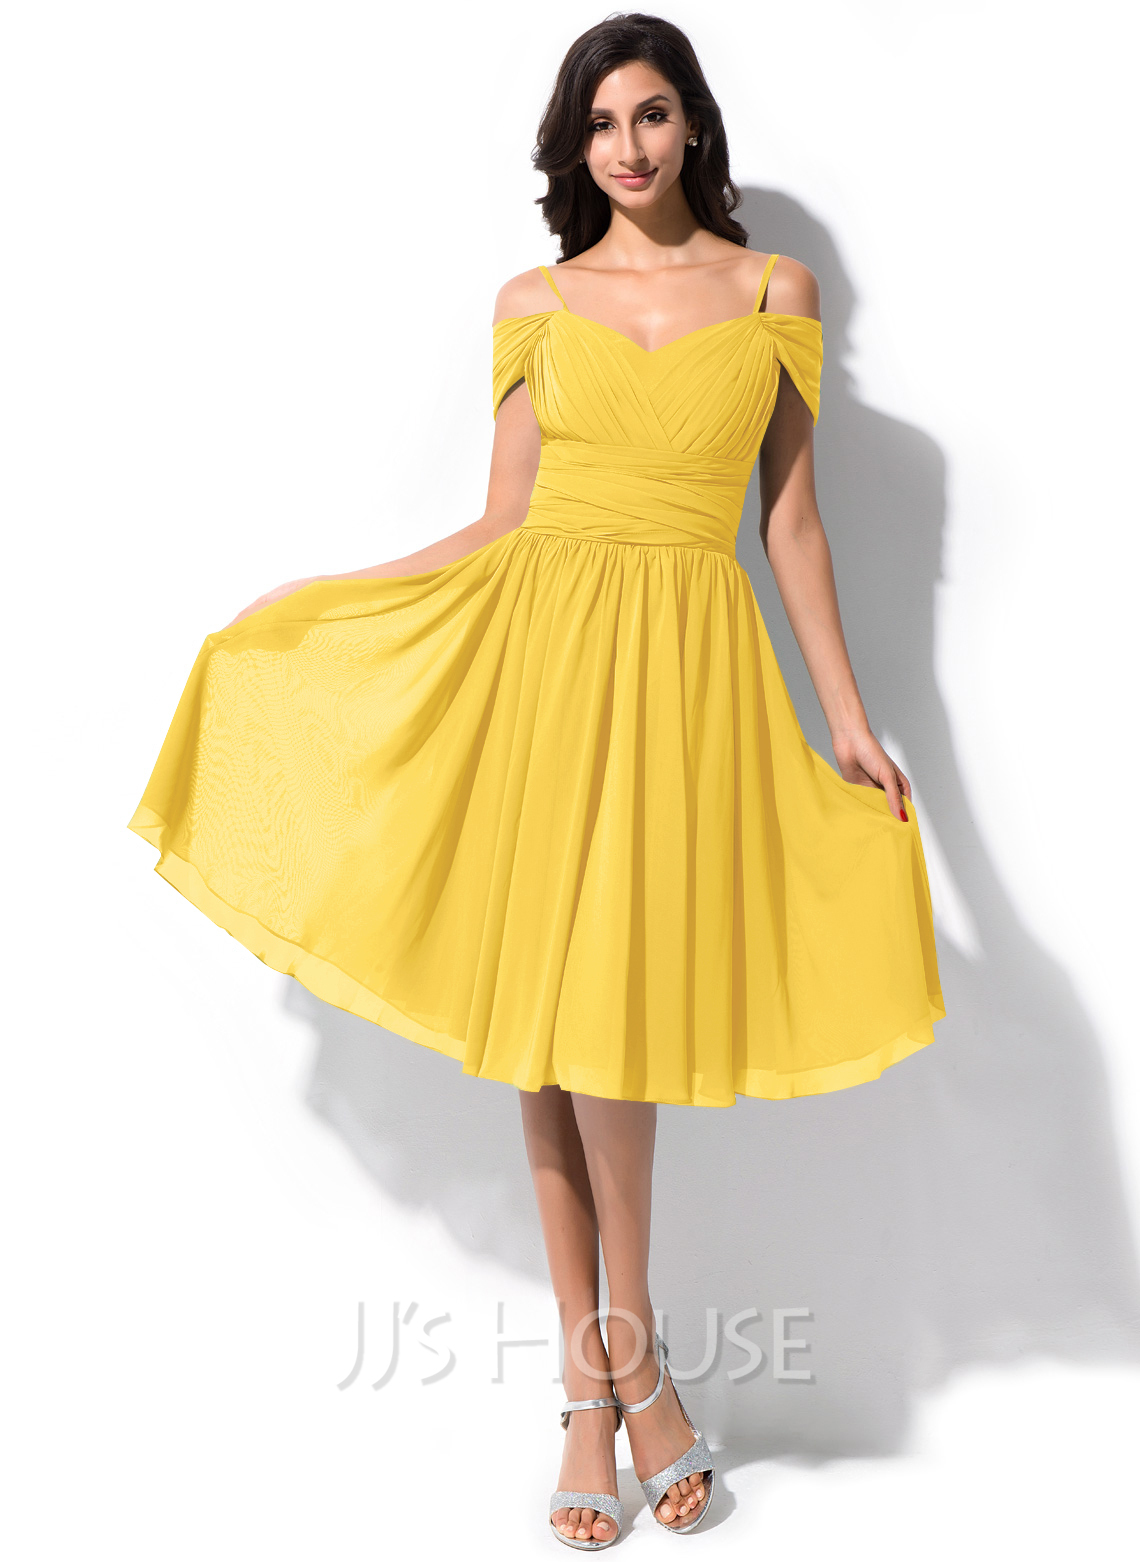 Off-the-Shoulder Knee-Length Chiffon Bridesmaid Dress